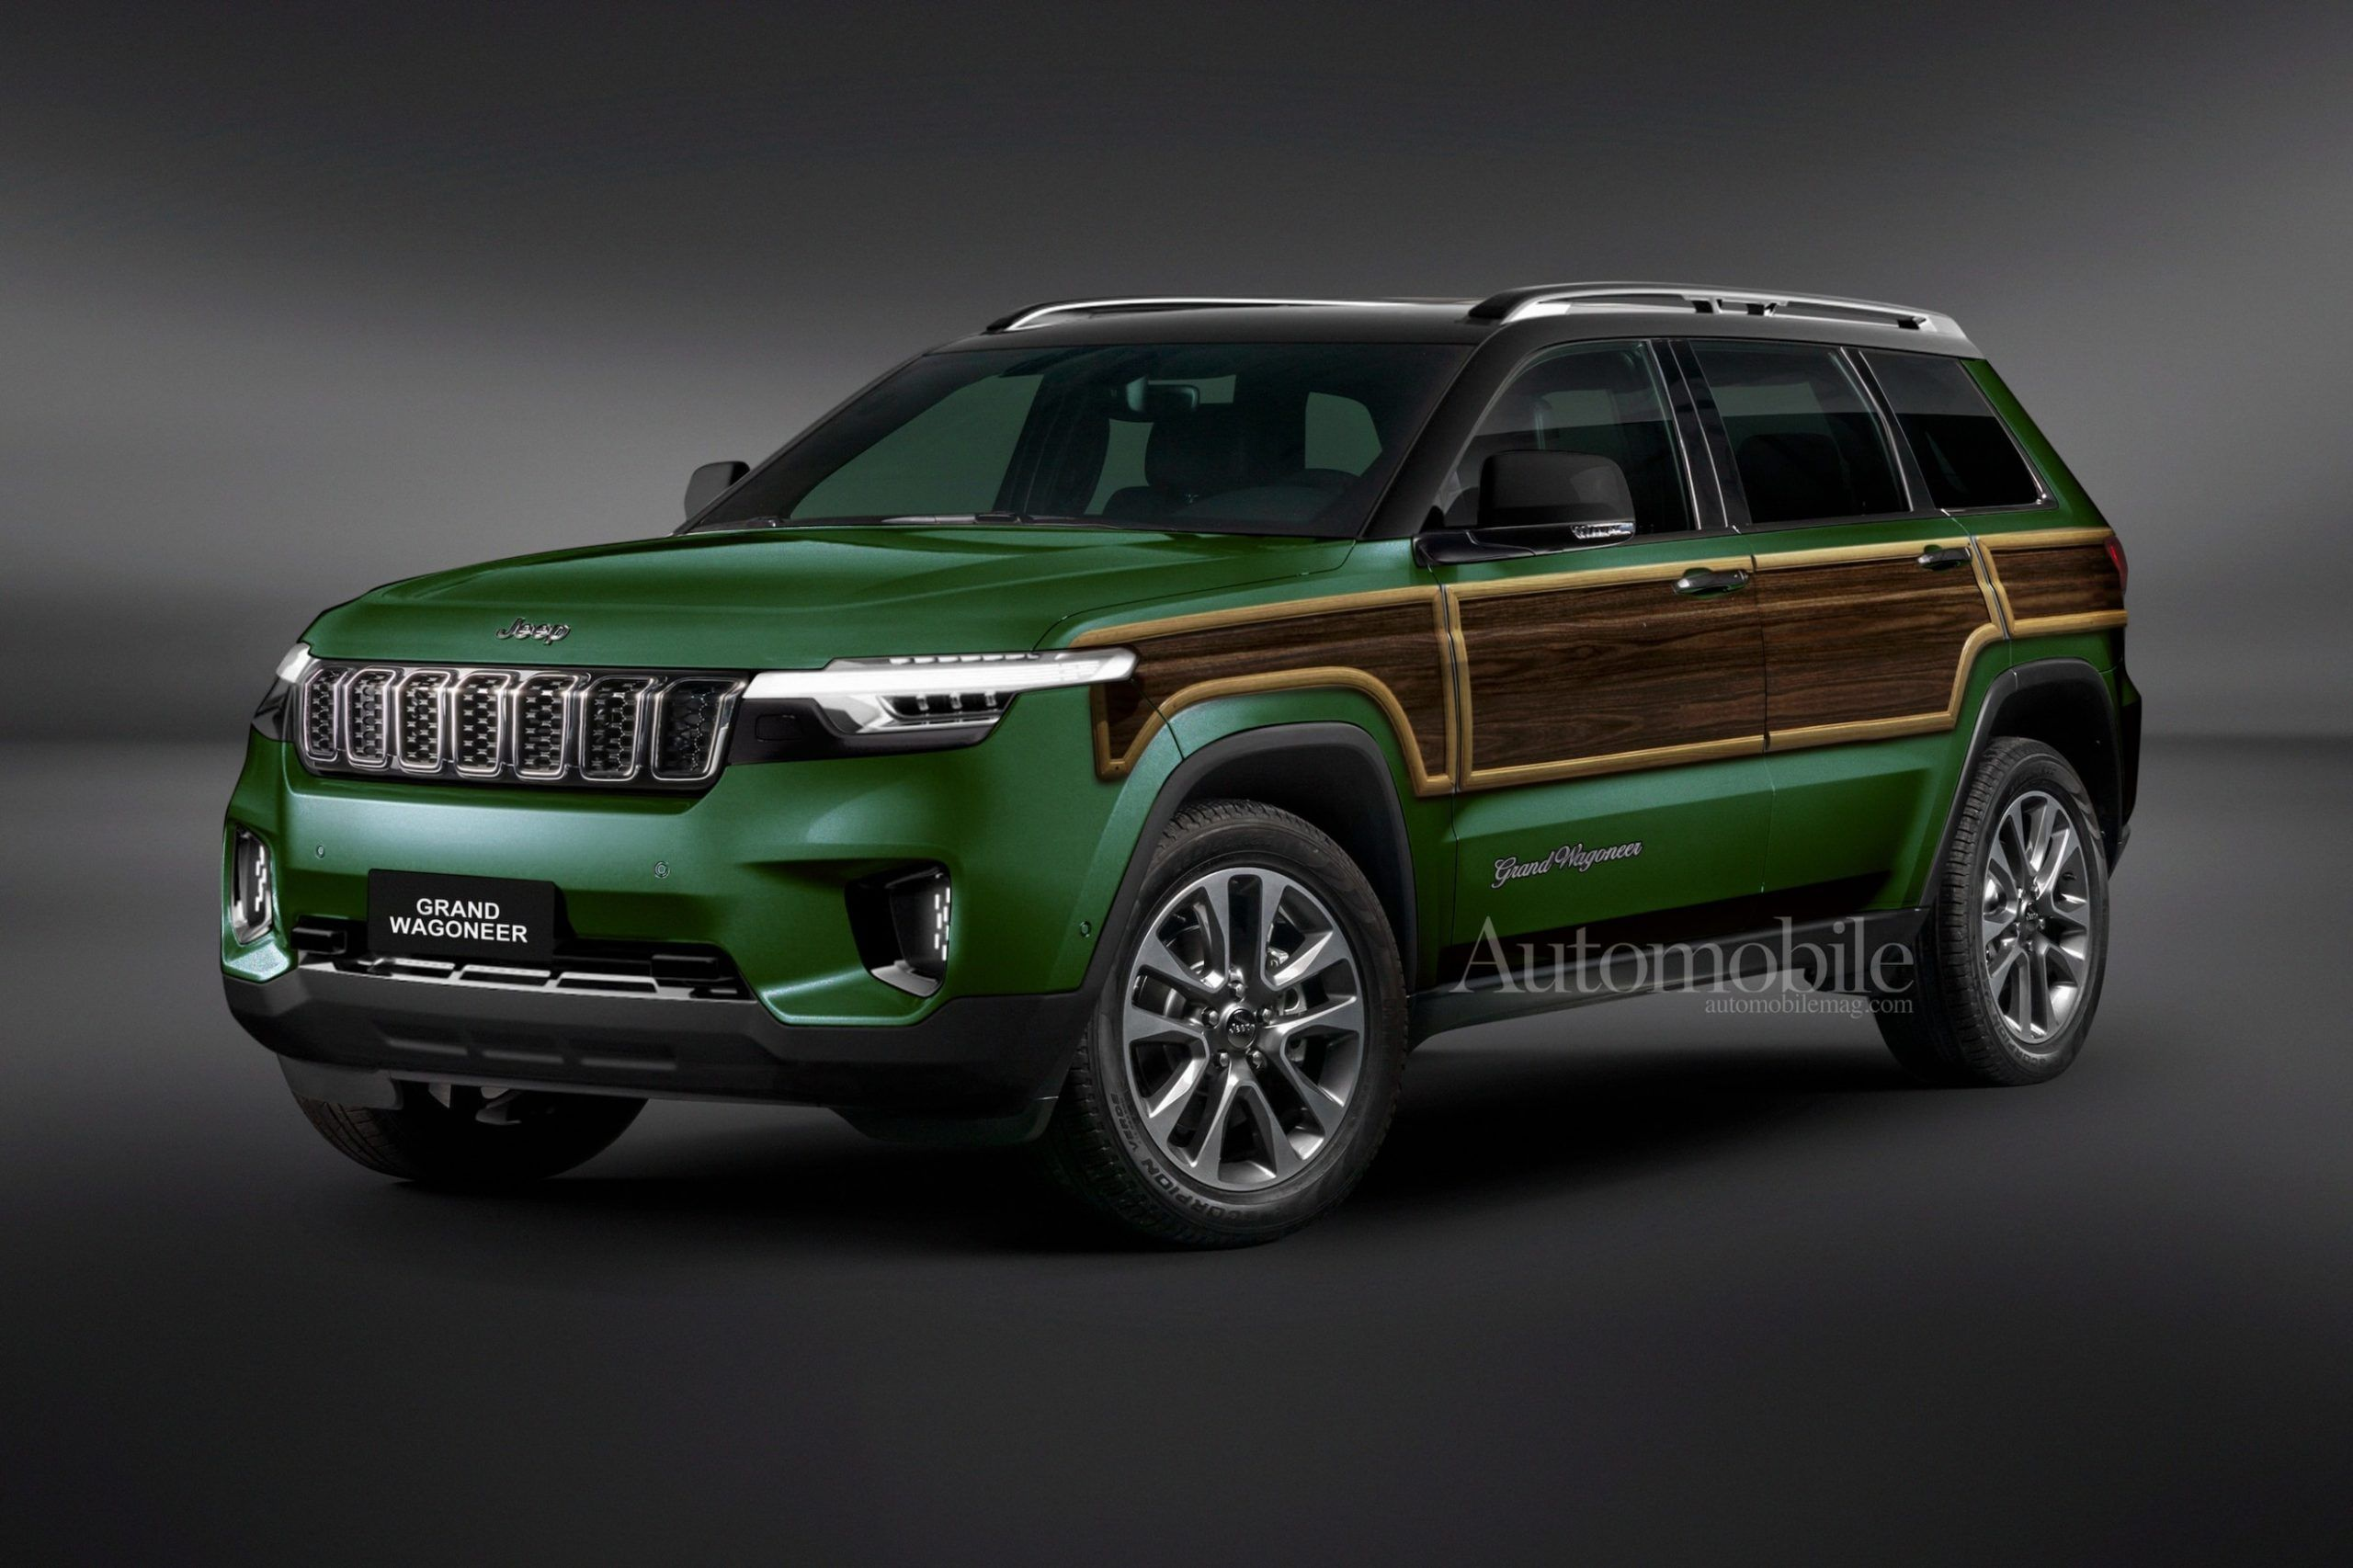 The Ultimate Revelation Of 2020 Jeep Grand Wagoneer Design The Ultimate Revelation Of 2020 Jeep Grand Wagoneer Design 2020 Jeep Grand Wagoneer Design Encour